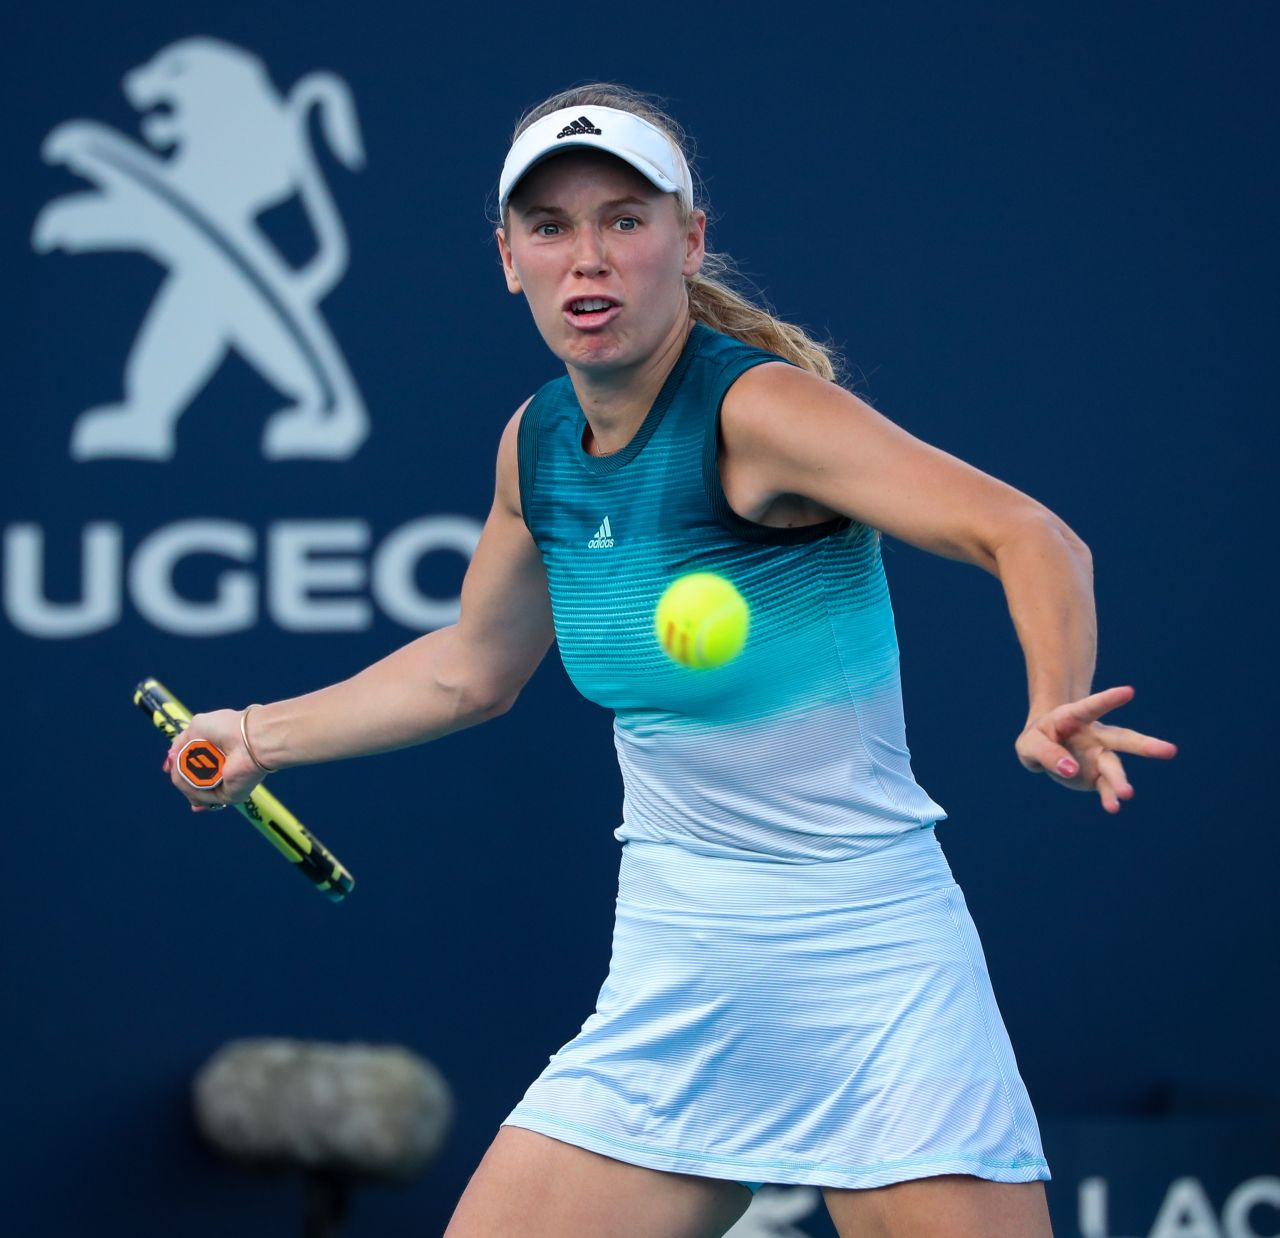 1. Lee Proposed to Wozniacki in November 2017